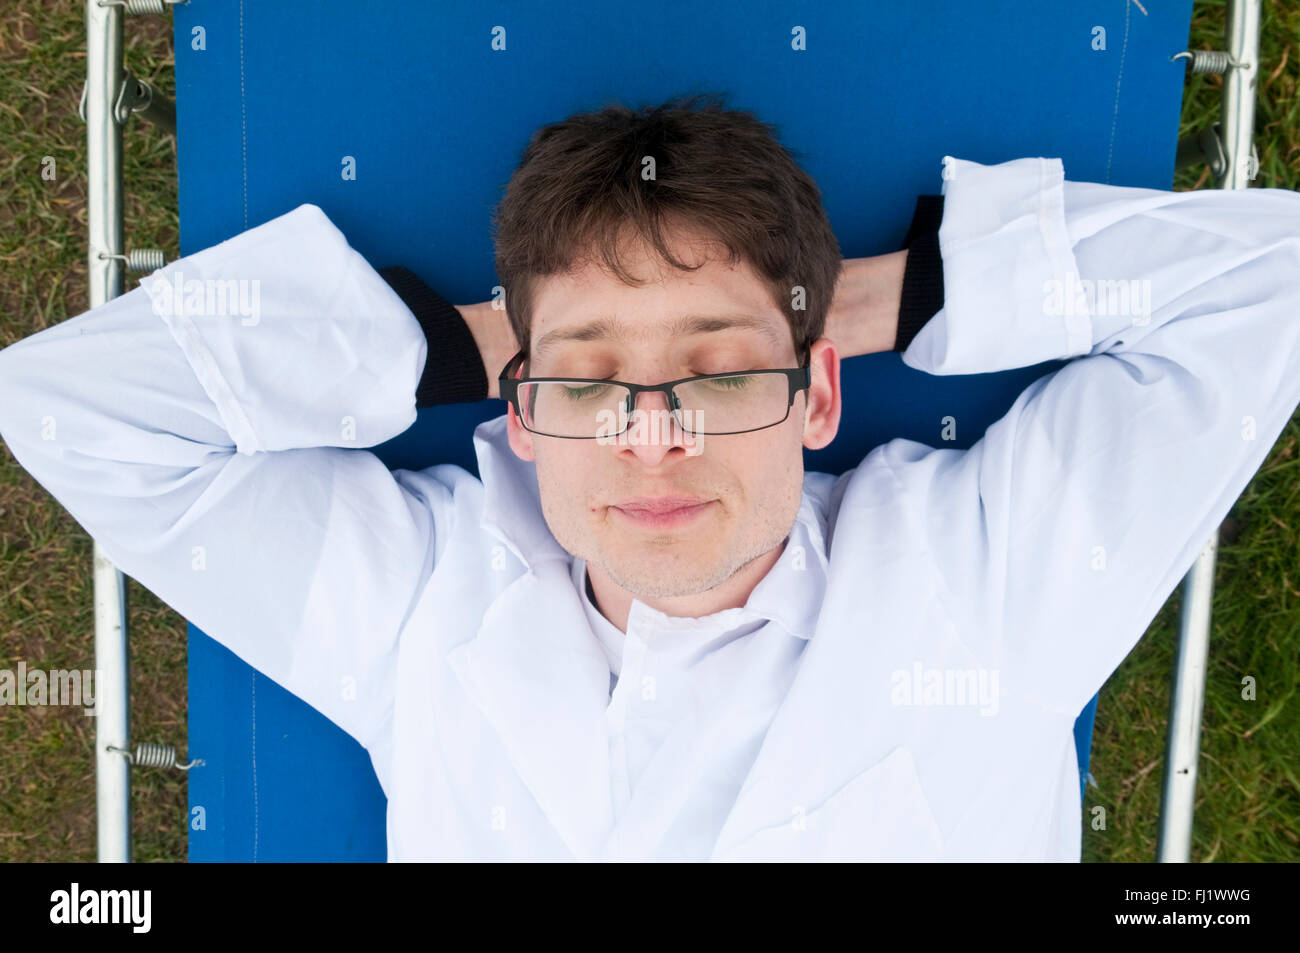 Man in a white doctor's or technician's lab coat laying back relaxing on a blue camp bed - Stock Image